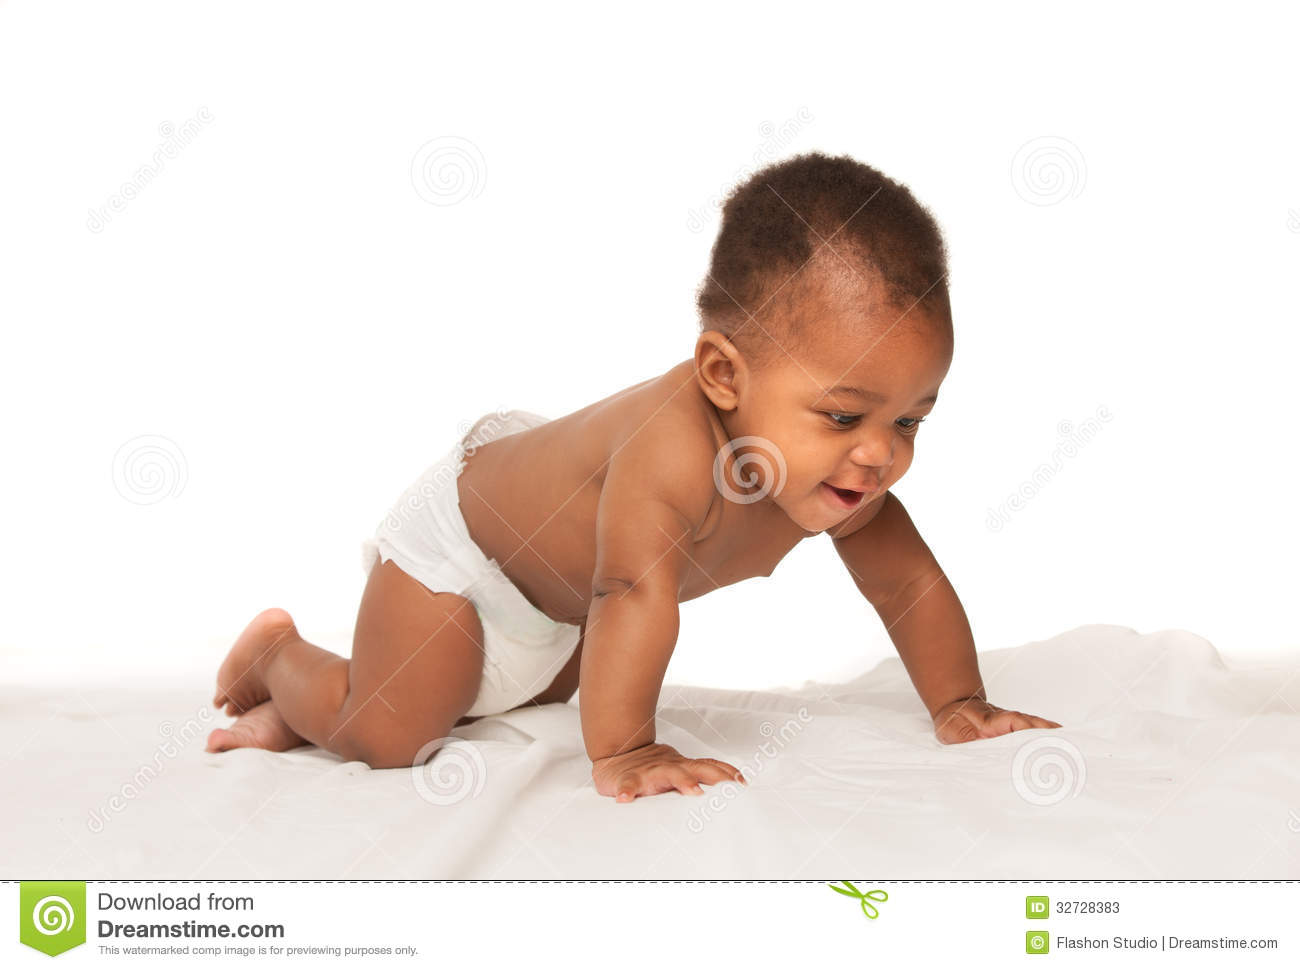 Top Most Popular Baby Names for Boys in America, BABY NAMES IN AMERICA: Top Most Popular Boy Baby Names in the United States, All names are from Social Security card applications for births that occurred in the United States.